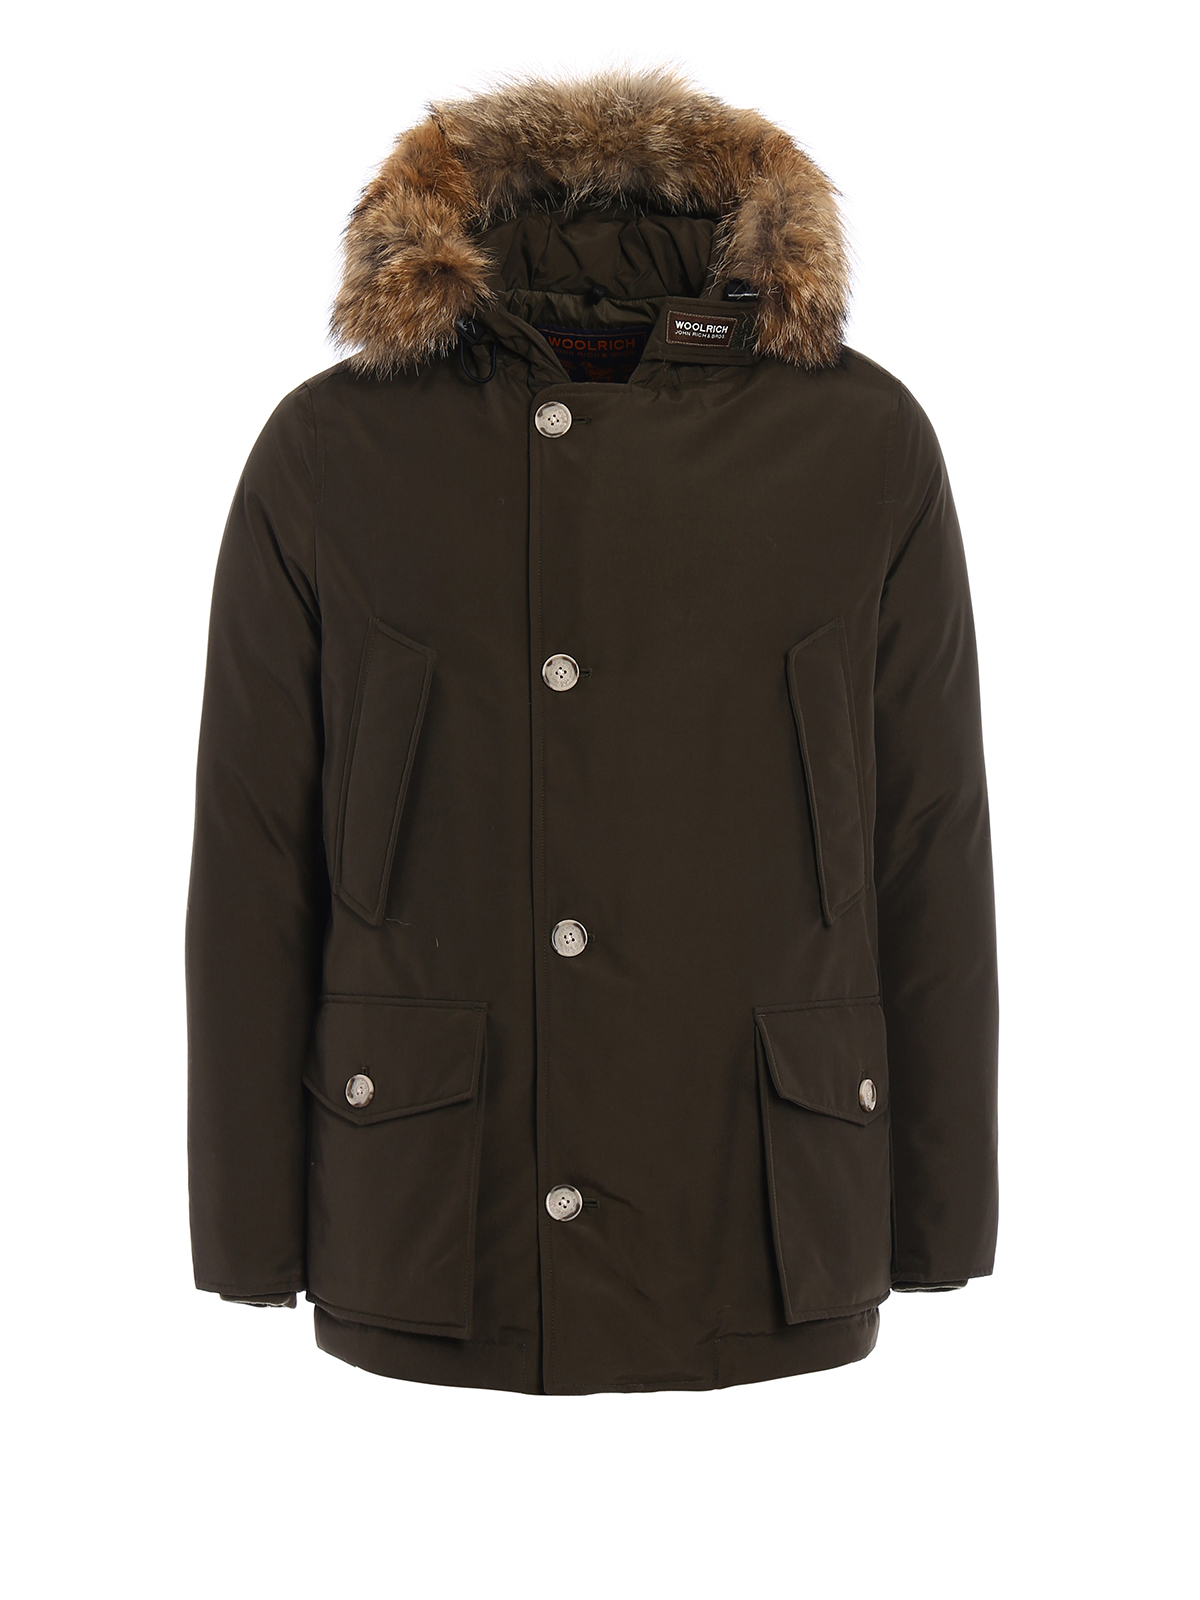 padded arctic anorak parka by woolrich parkas ikrix. Black Bedroom Furniture Sets. Home Design Ideas